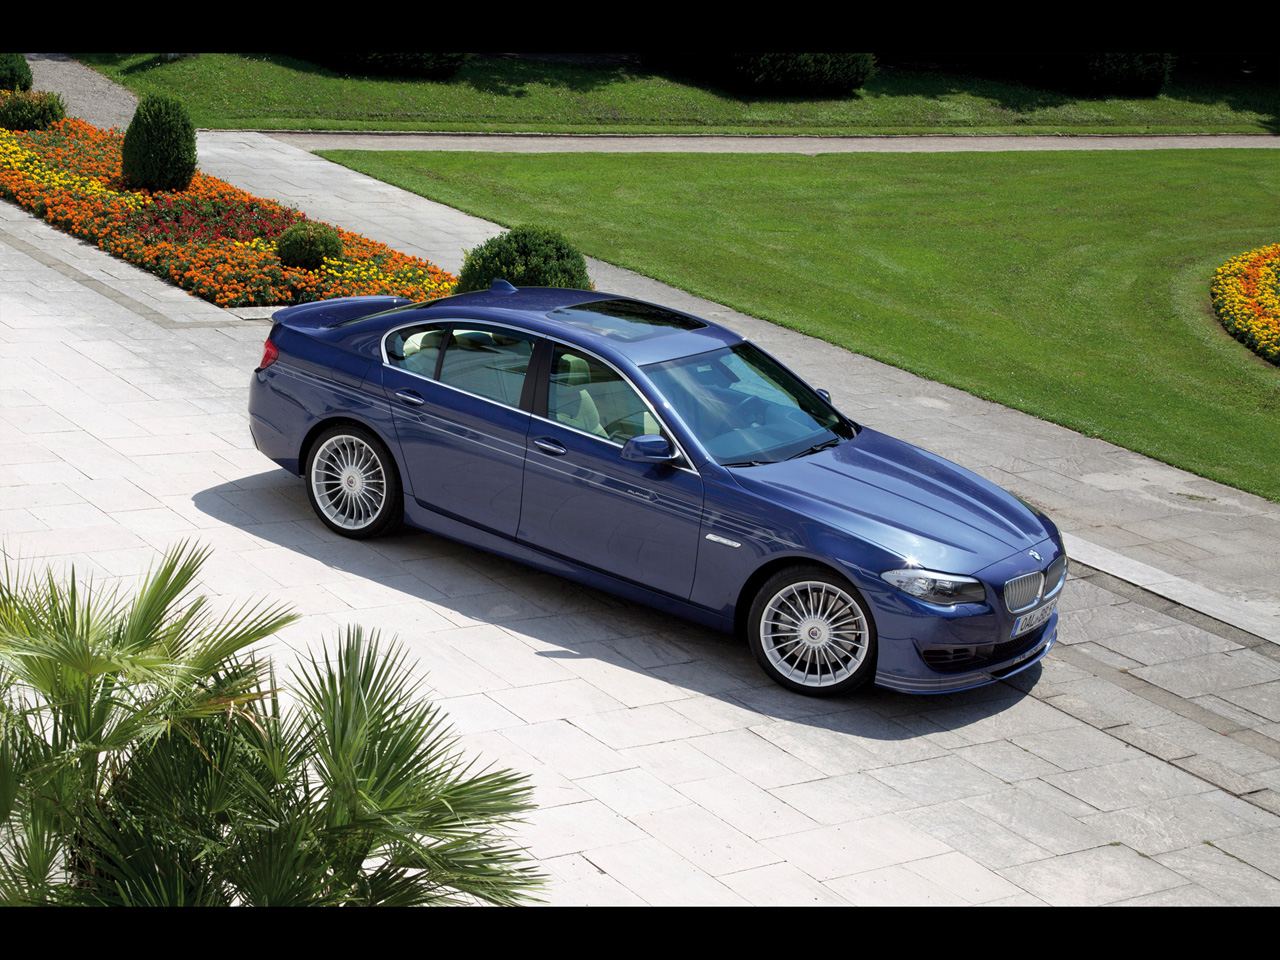 BMW b5 Alpina photo - 9